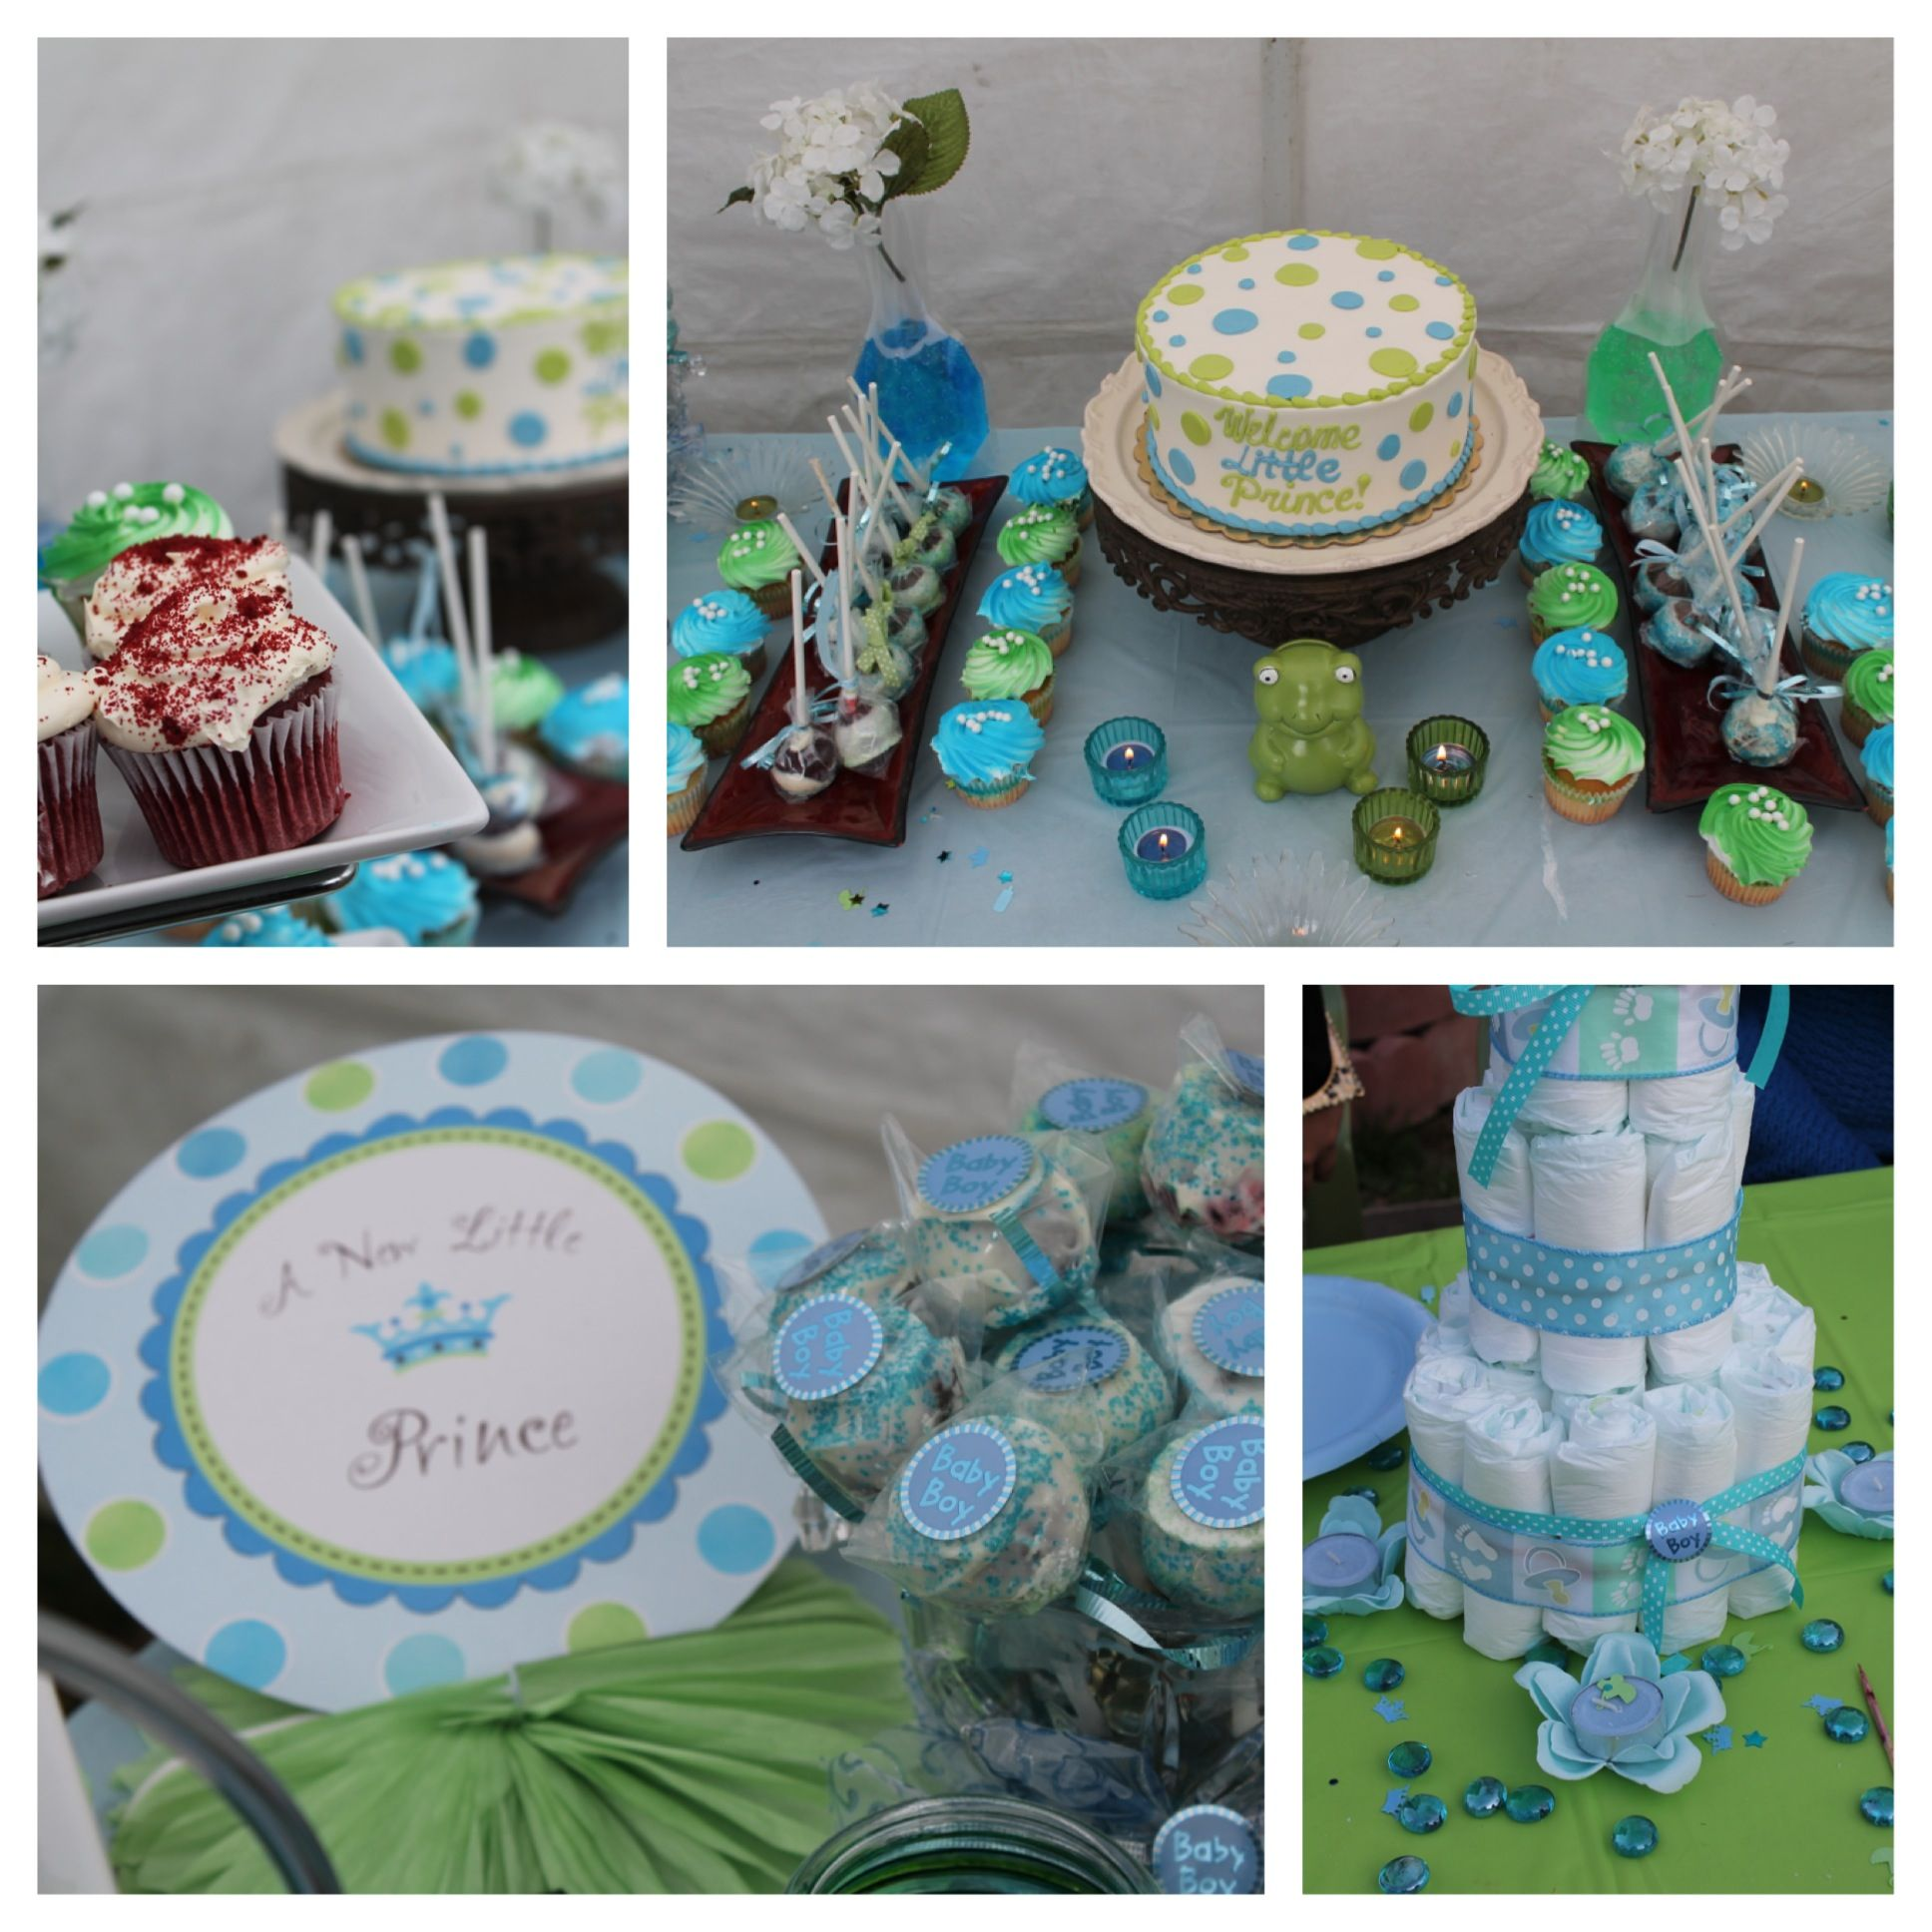 Little Prince Baby Shower Baby shower Pinterest